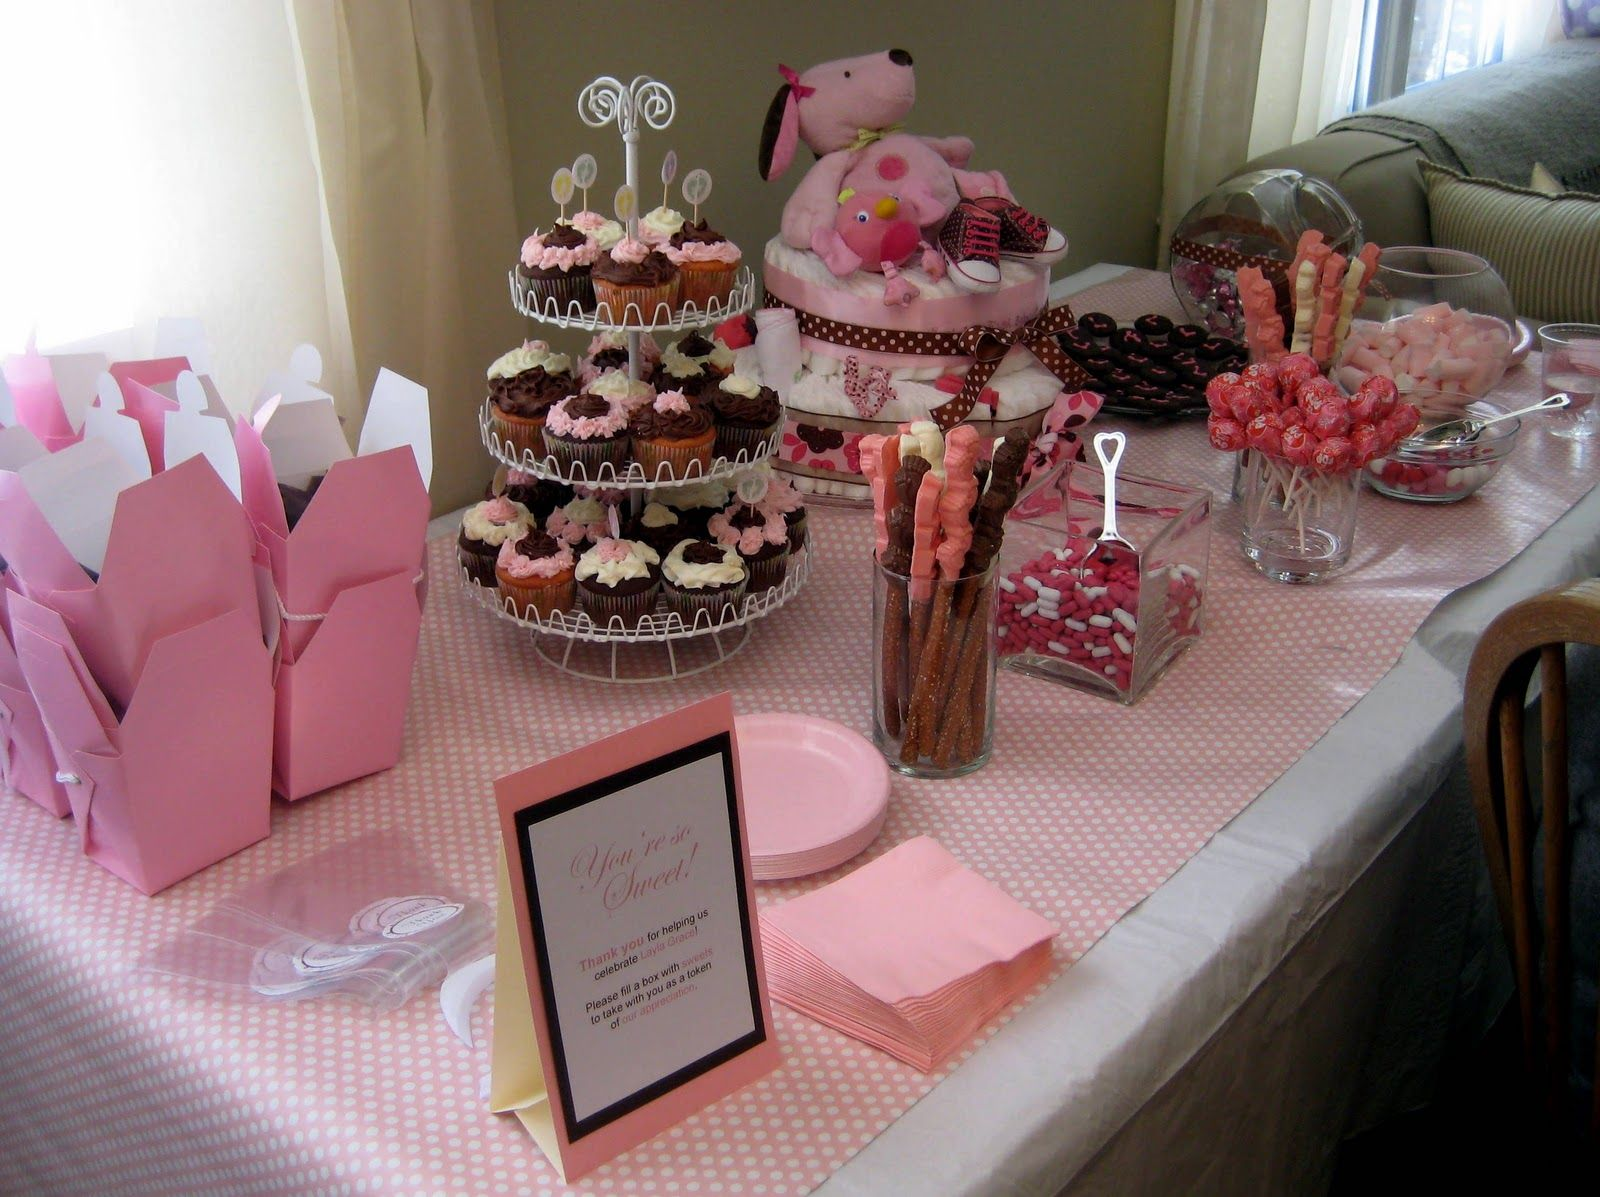 Dessert Bar Ideas My Favorite Part The Pink And Chocolate Themed Dessert Bar Yum Baby Shower Desserts Baby Shower Desserts Girl Baby Shower Dessert Table